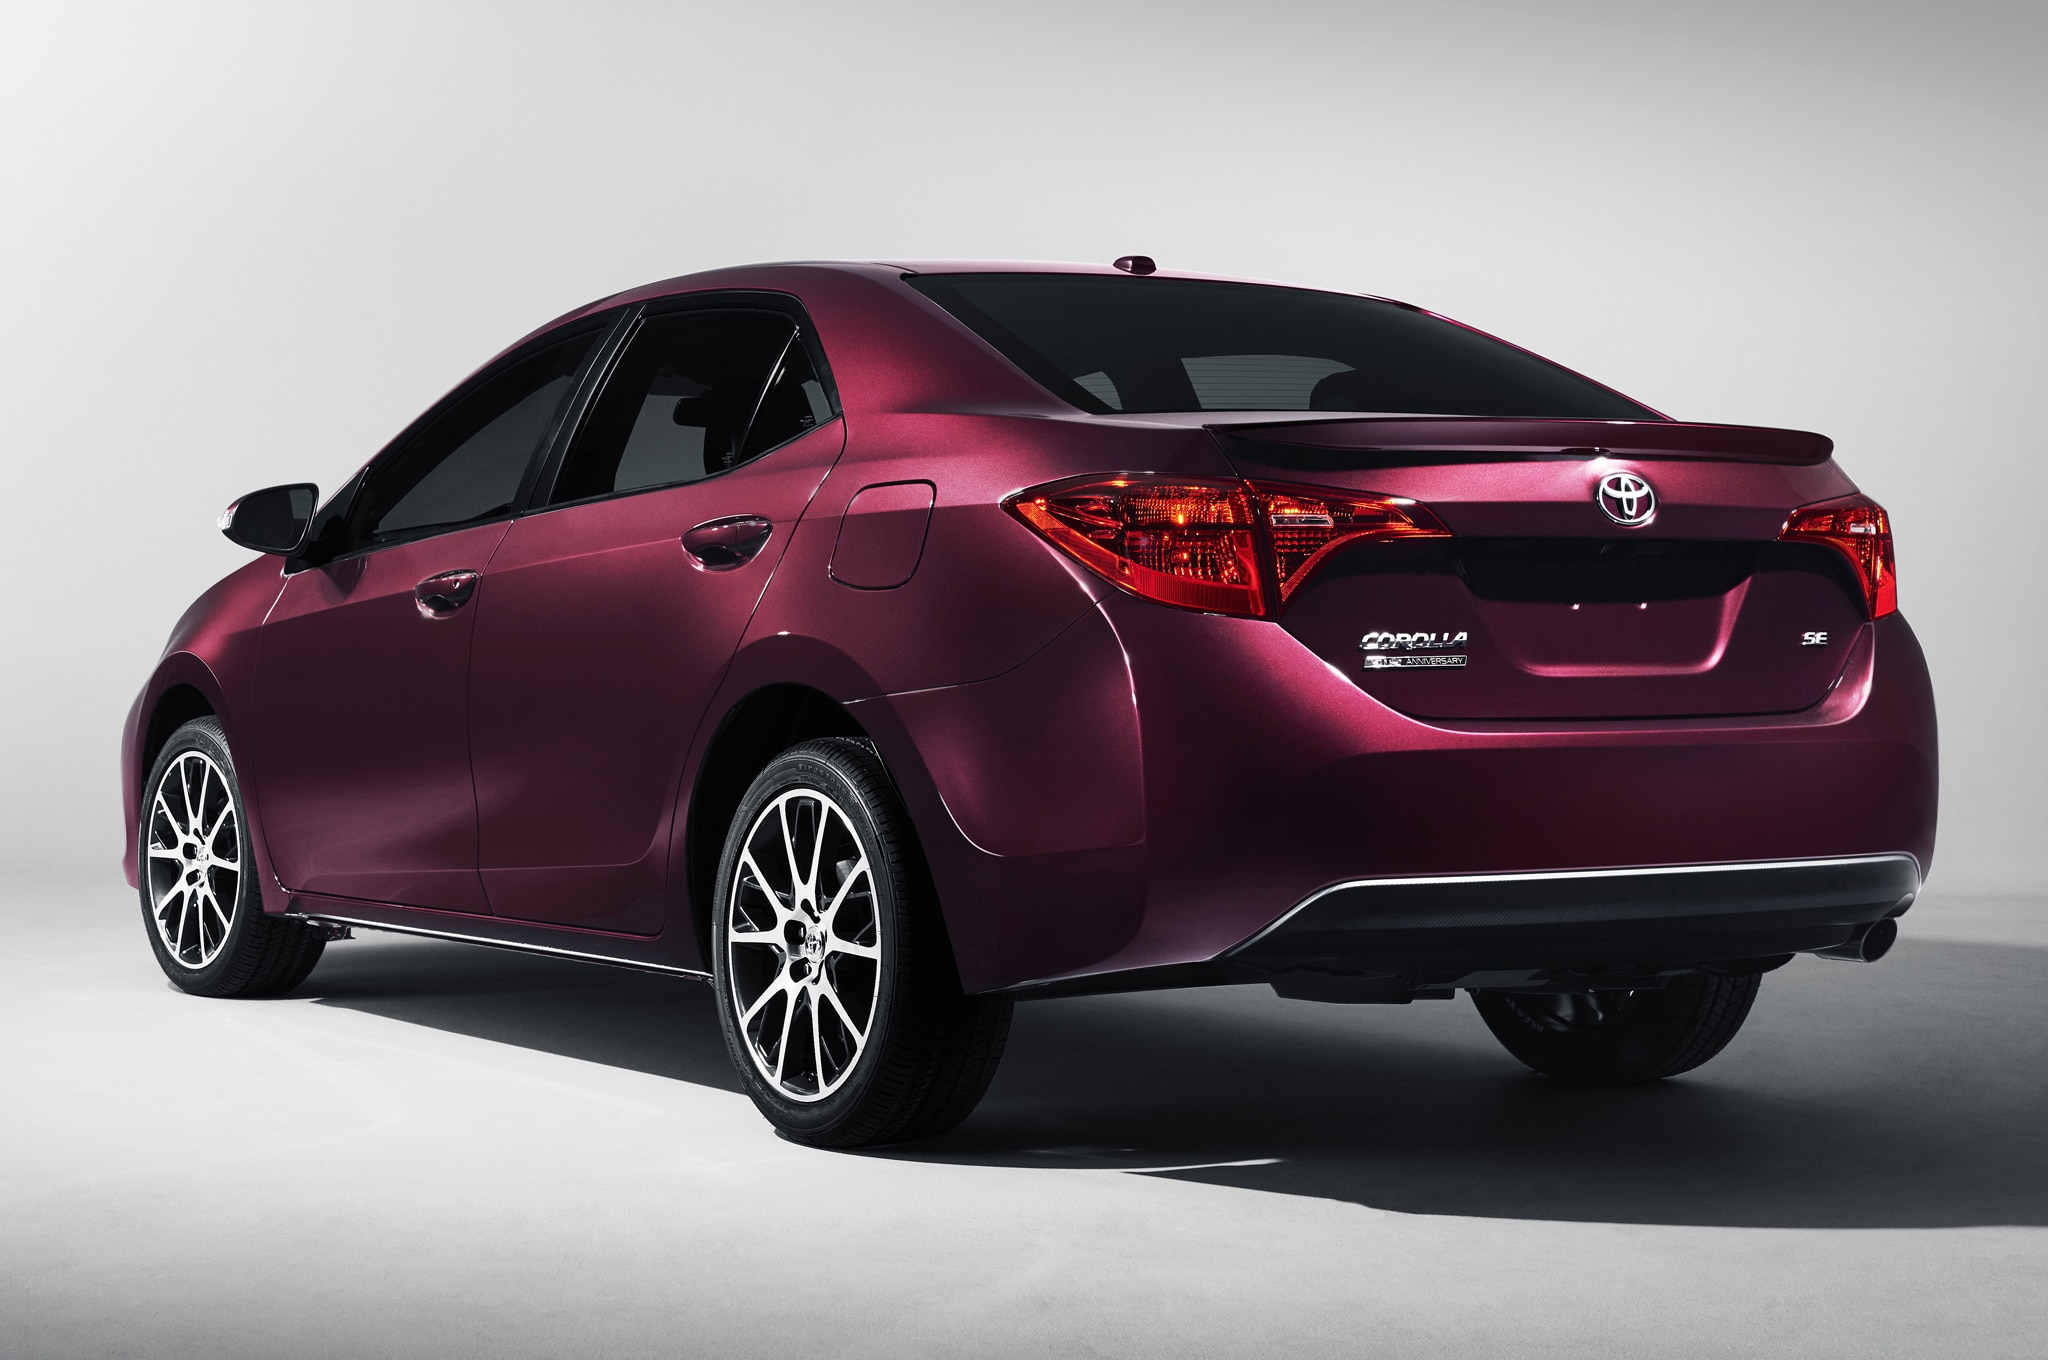 2017 Toyota Corolla 50th Anniversary Special Edition Rear Side View 29 Junio 2016 Wpengine